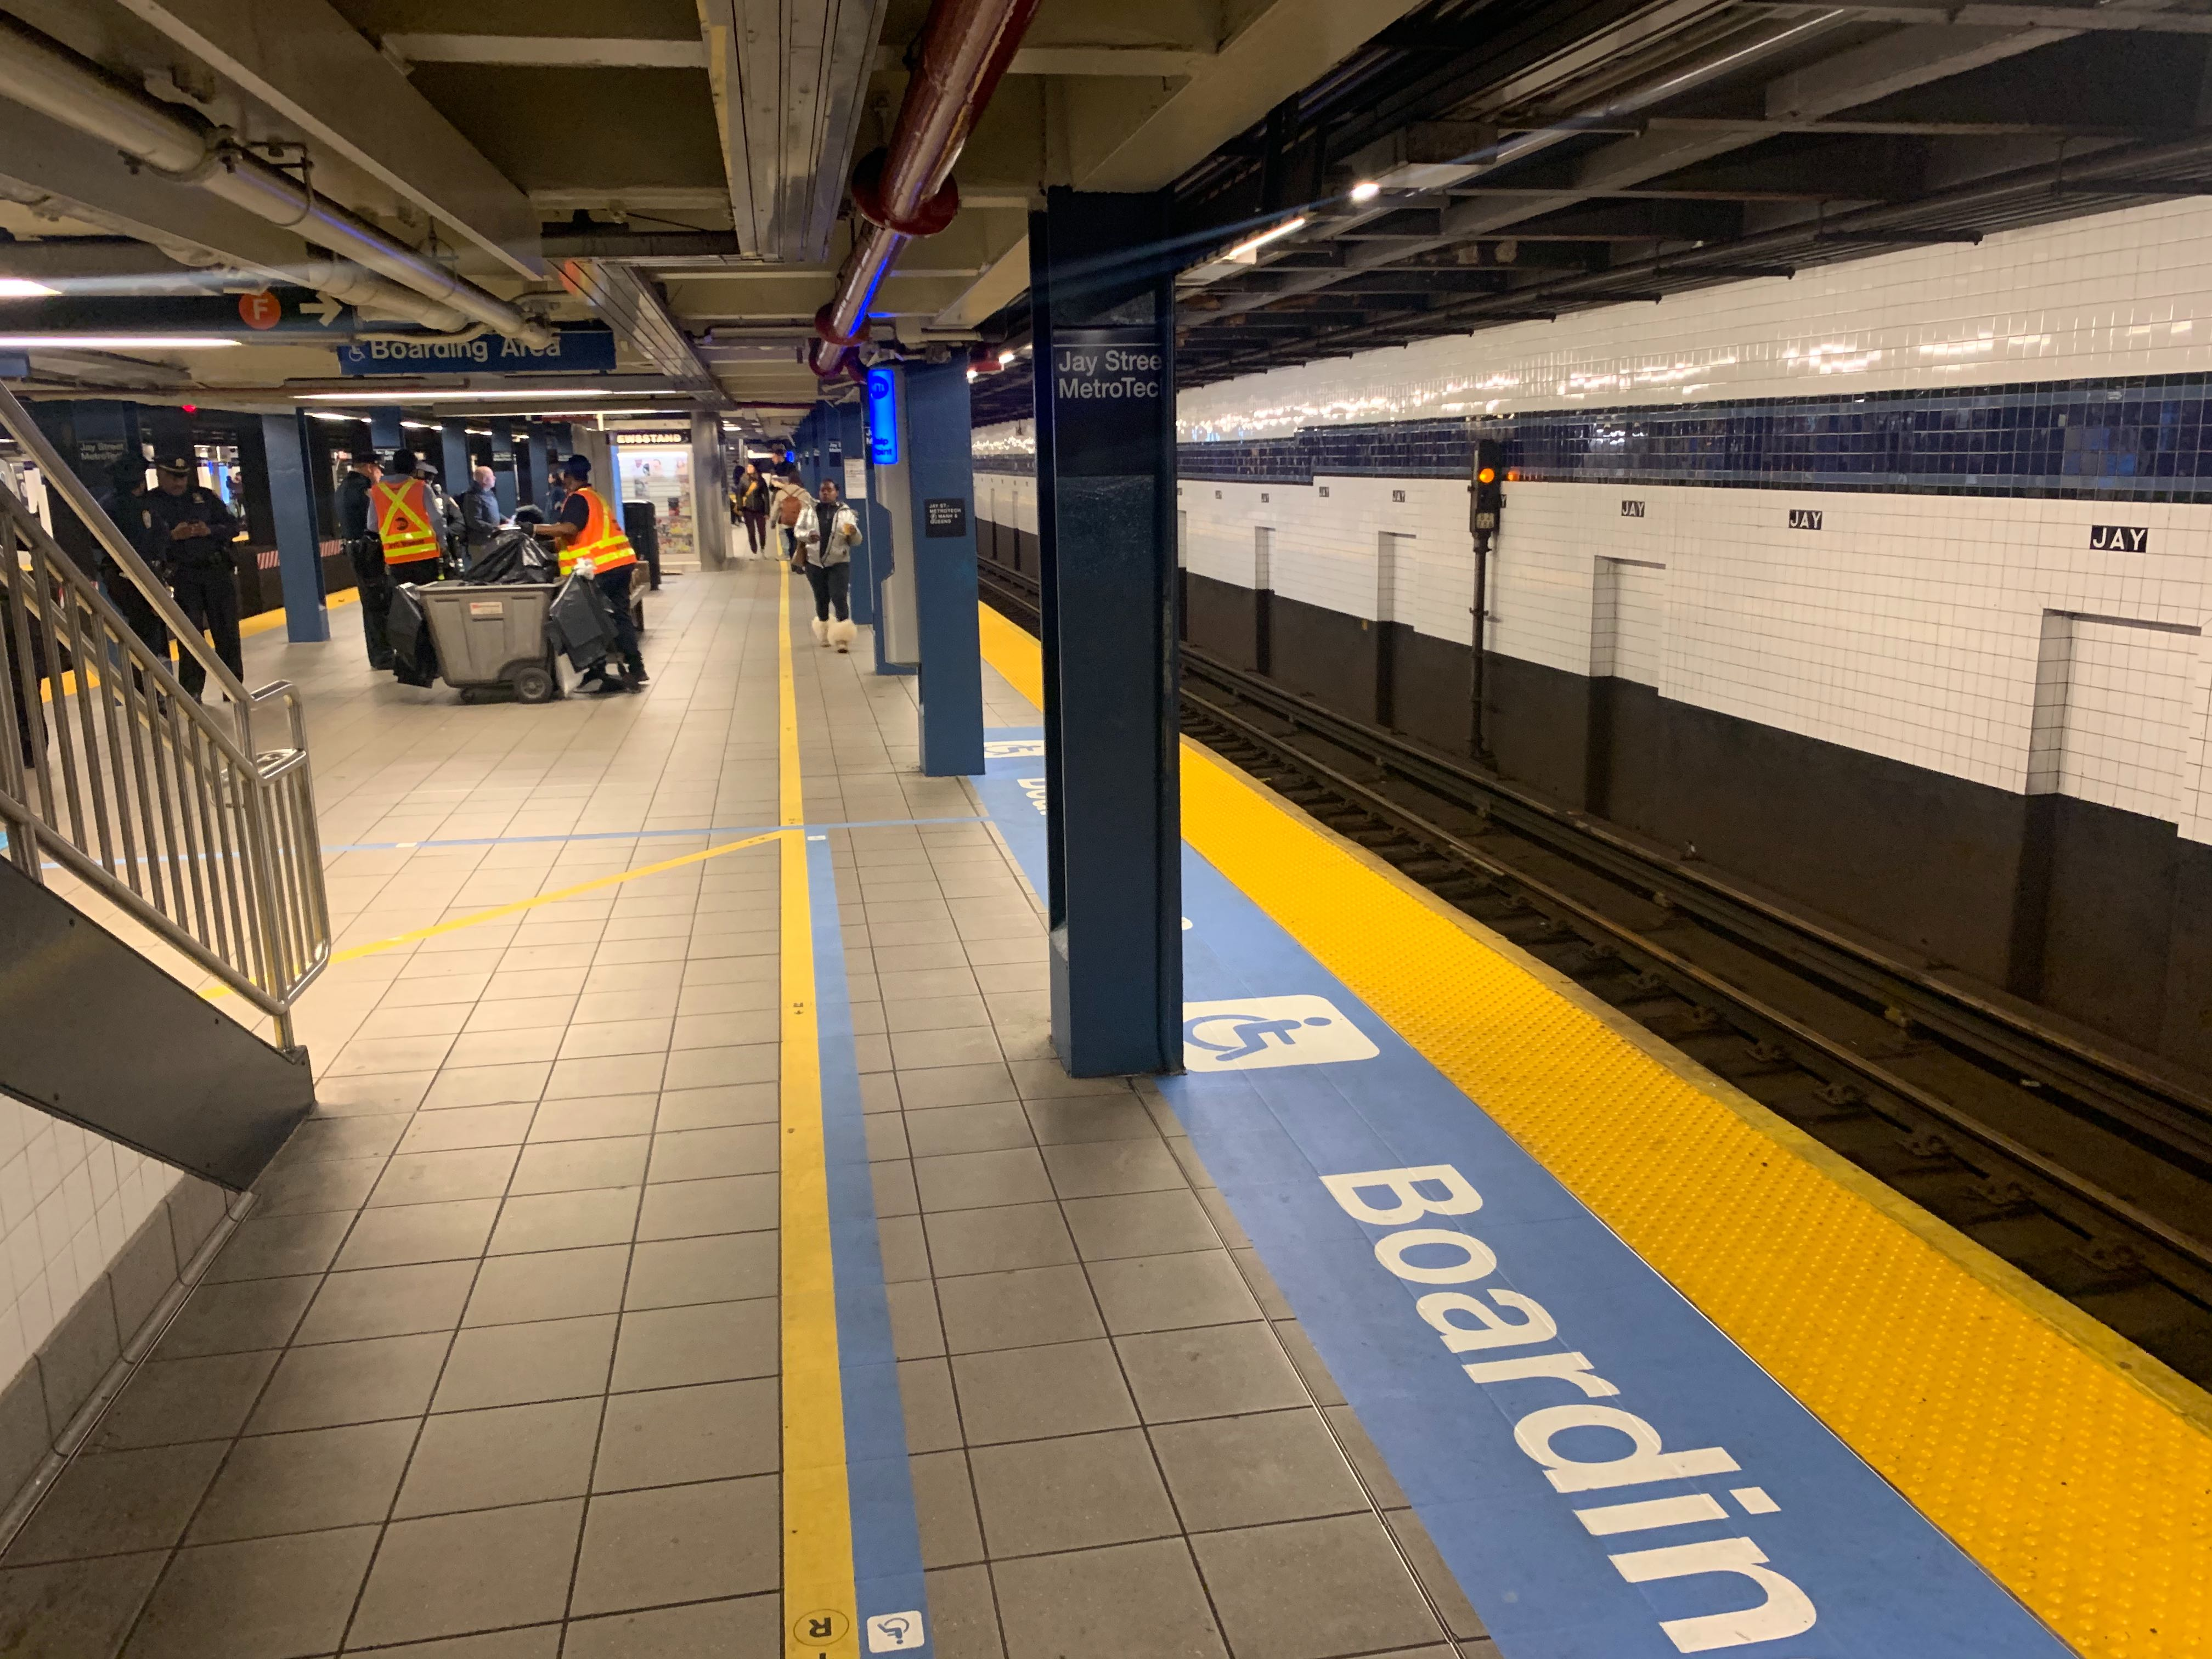 MTA is turning Jay Street-Metro Tech into an accessibility 'lab'